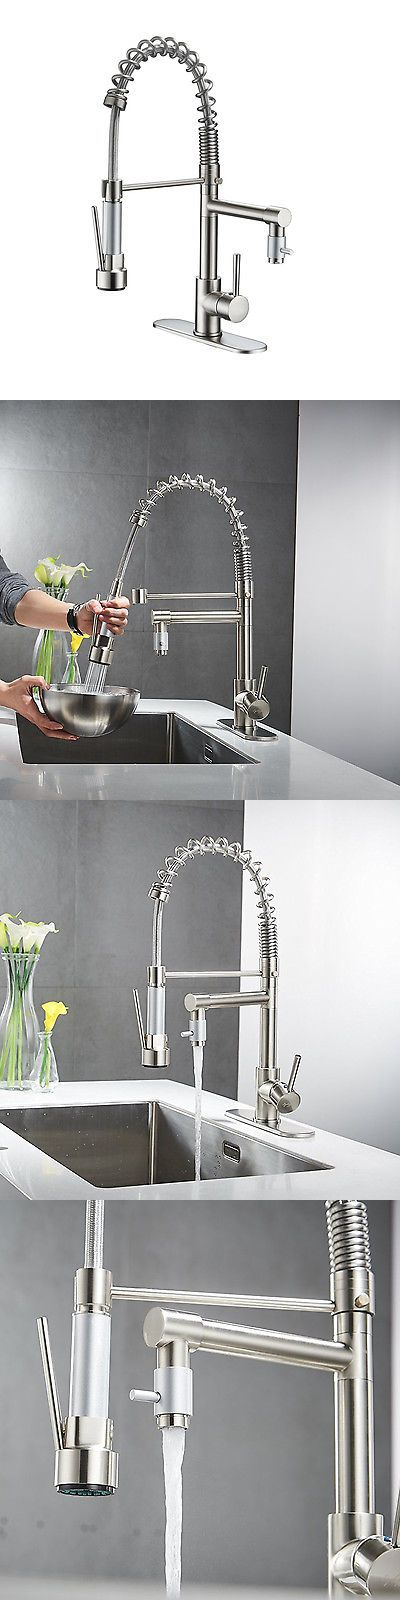 Faucets 42024: Brushed Nickel Kitchen Faucet Swivel Spout Single Handle With 10 Cover Plate Tap -> BUY IT NOW ONLY: $52.99 on eBay!